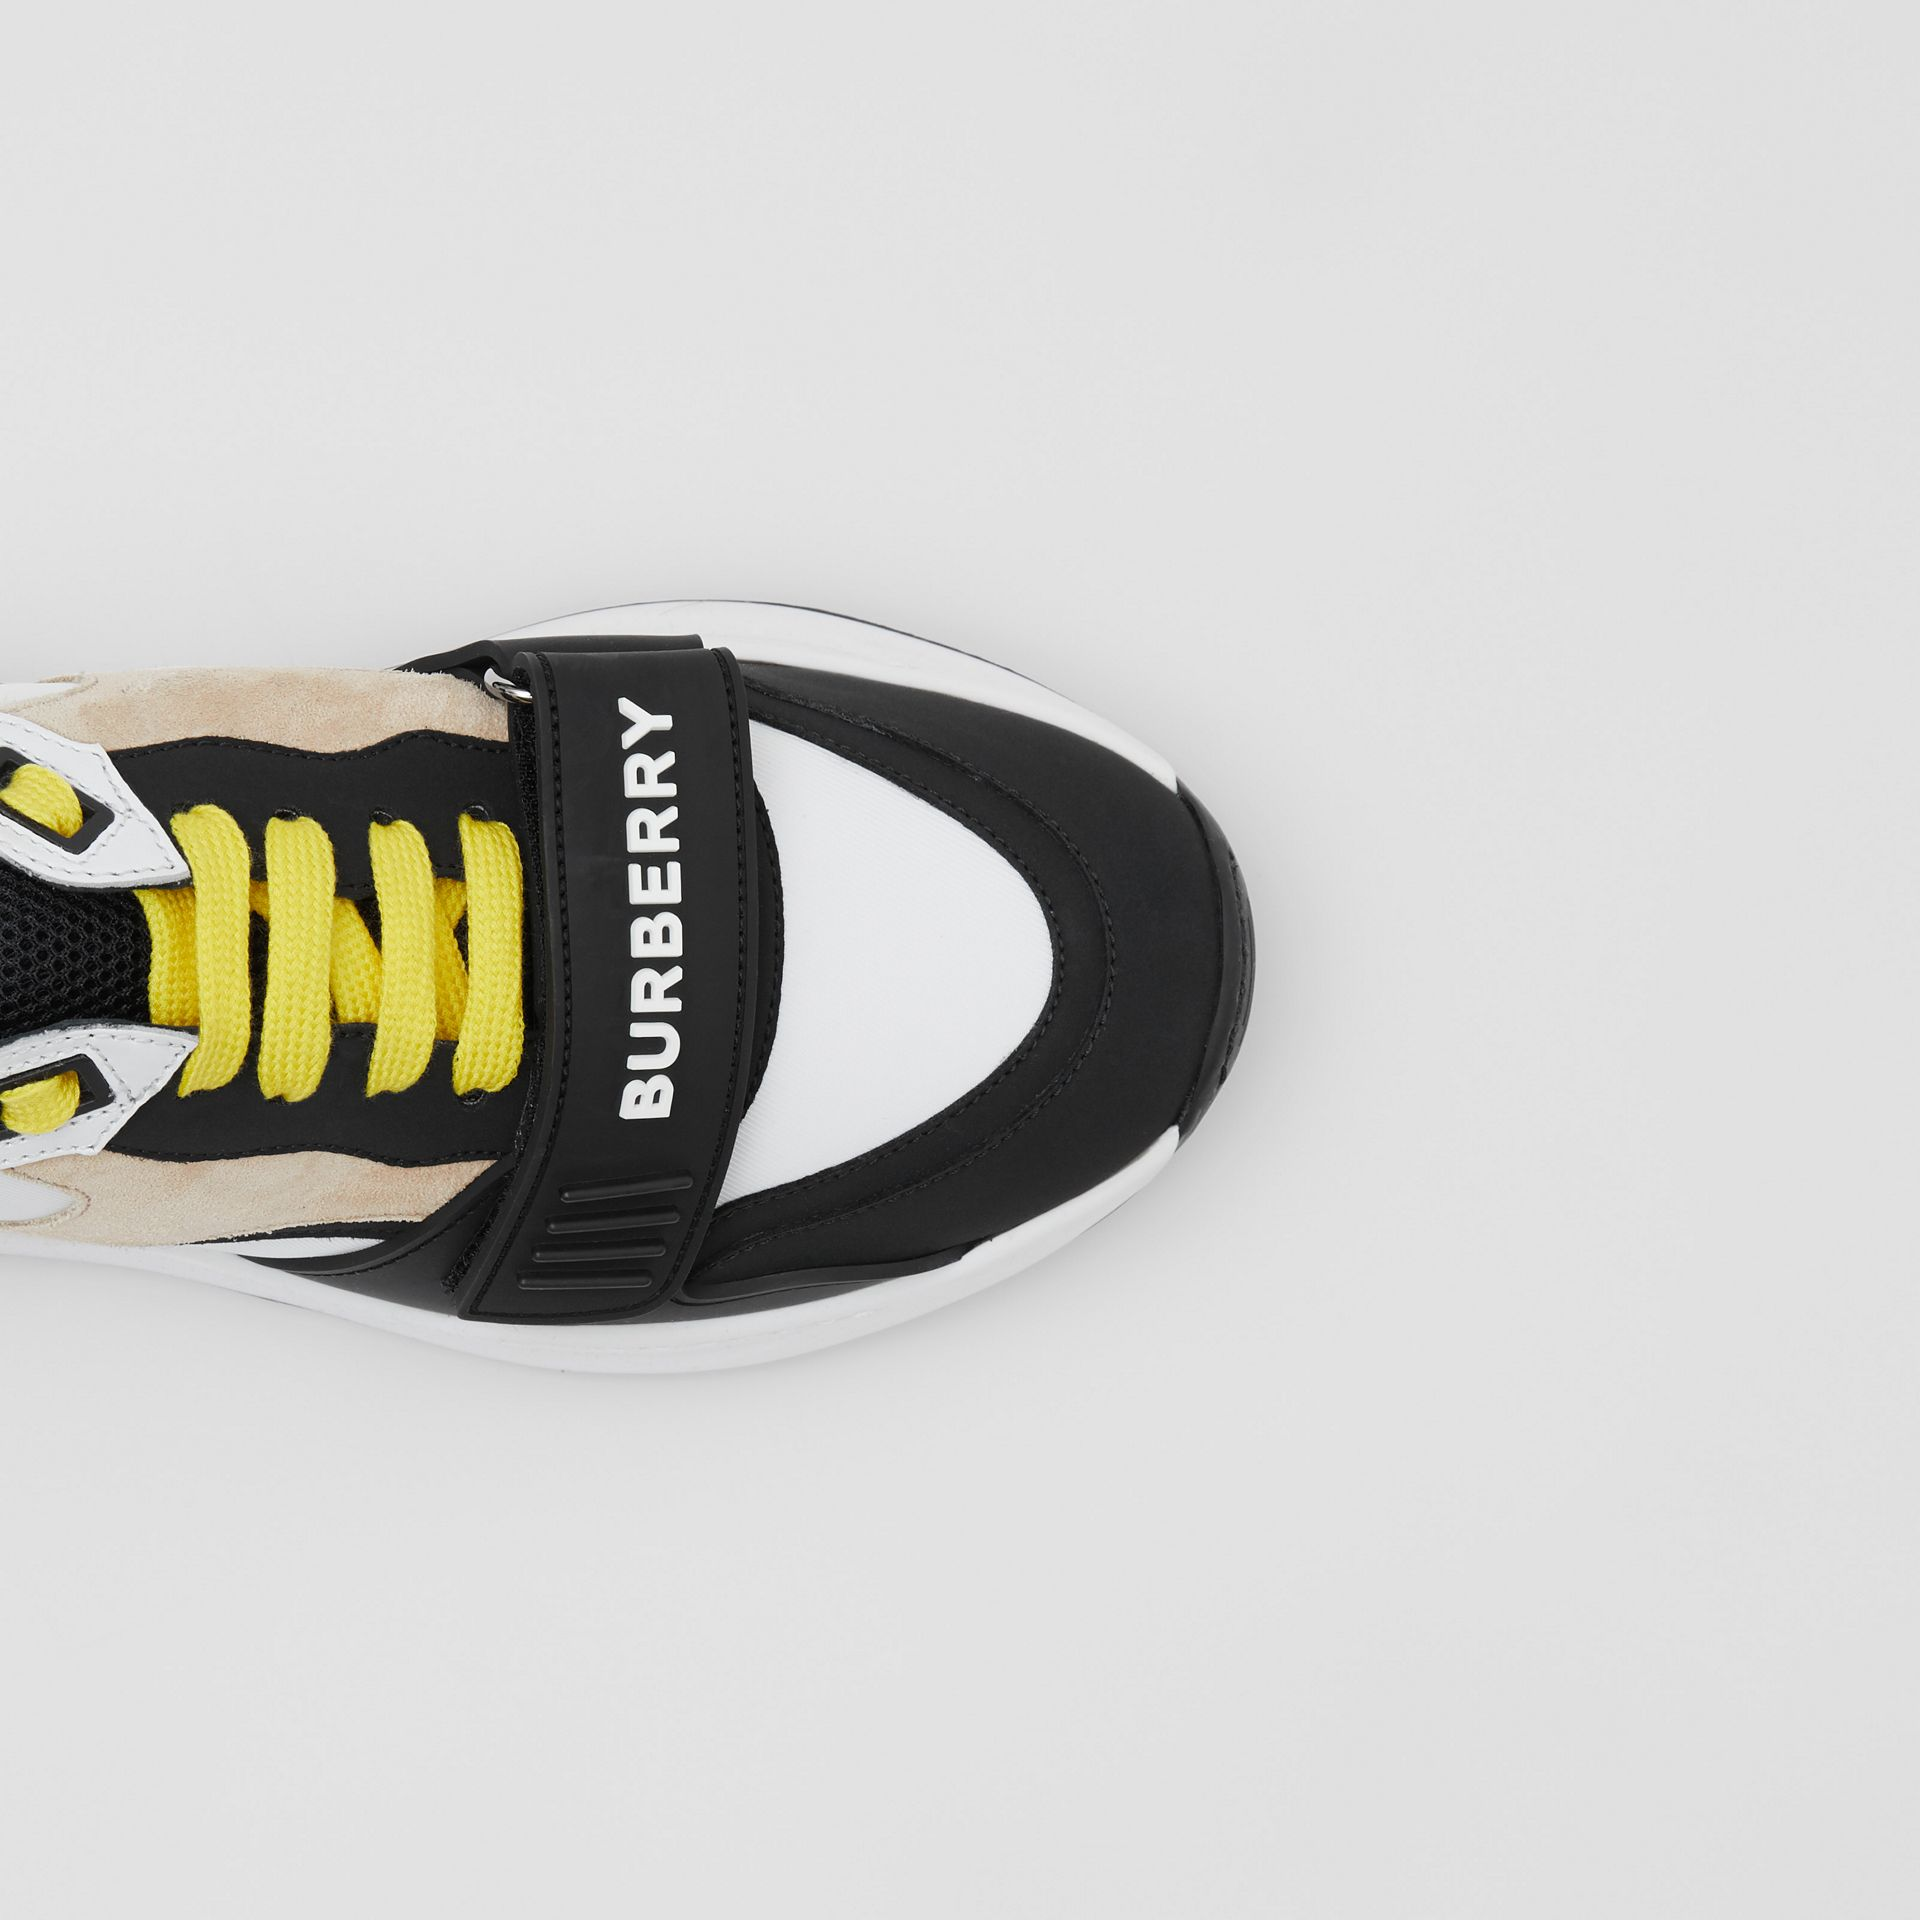 Nylon, Suede and Vintage Check Sneakers in Archive Beige - Women | Burberry United States - gallery image 1